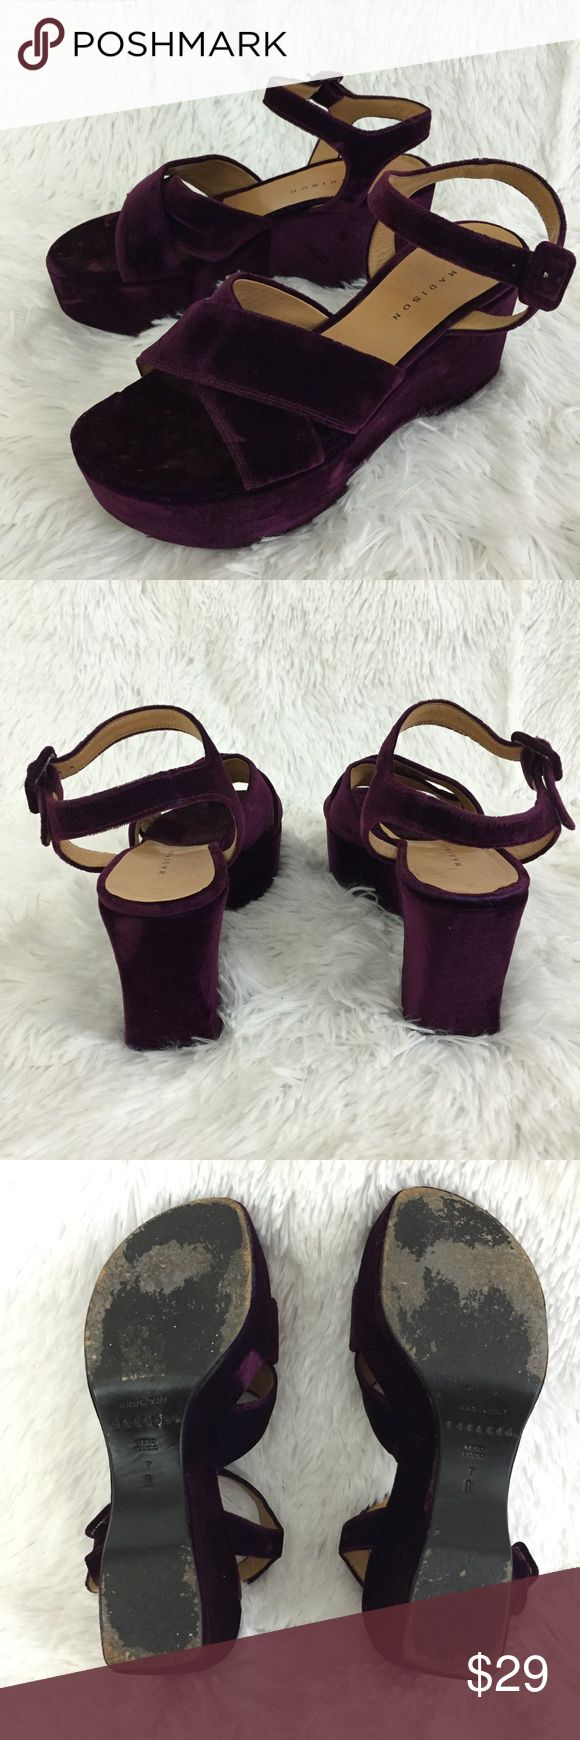 Madison, made in Italy purple velvet platforms, 7 These MADISON purple velvet platforms are insanely cute! They are a size 7 and run true to size.  They are in good pre-owned condition with moderate overall wear to the soles and velvet, only flaw is liner on one shoe is coming unglued slightly on edge, see last image for detail. madison Shoes Platforms